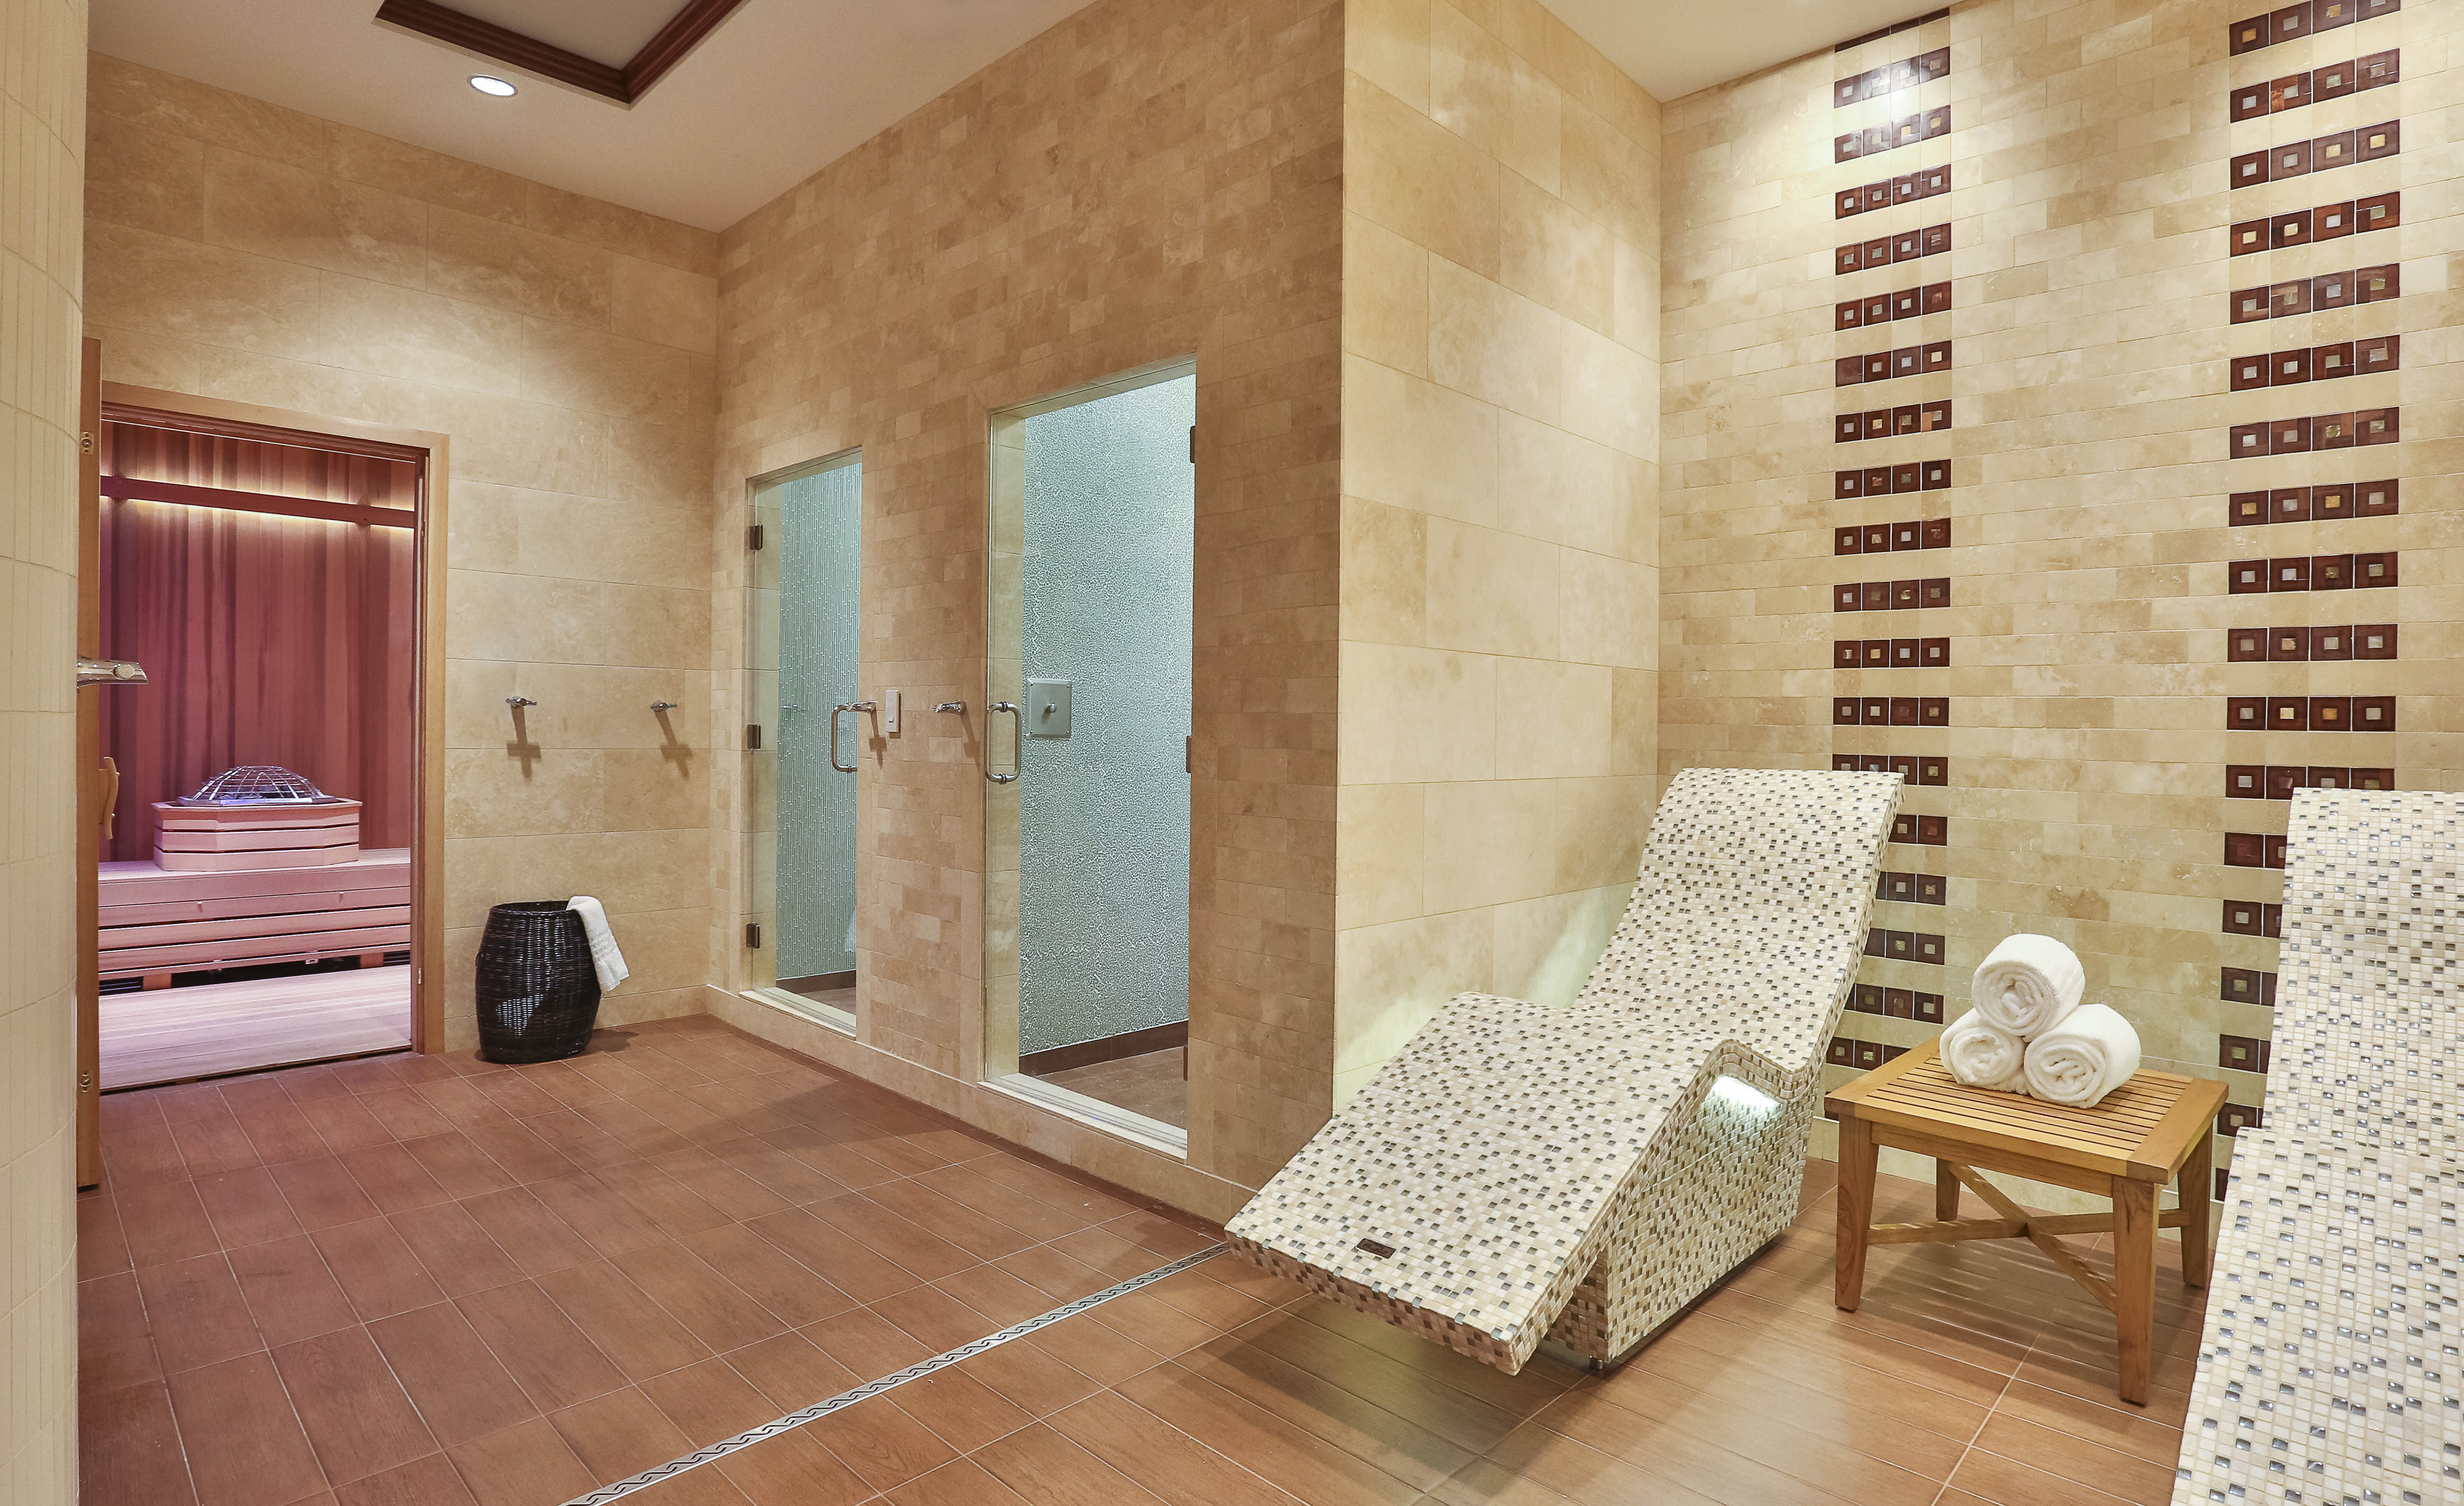 Fairmont Kea Lani Spa Renovation